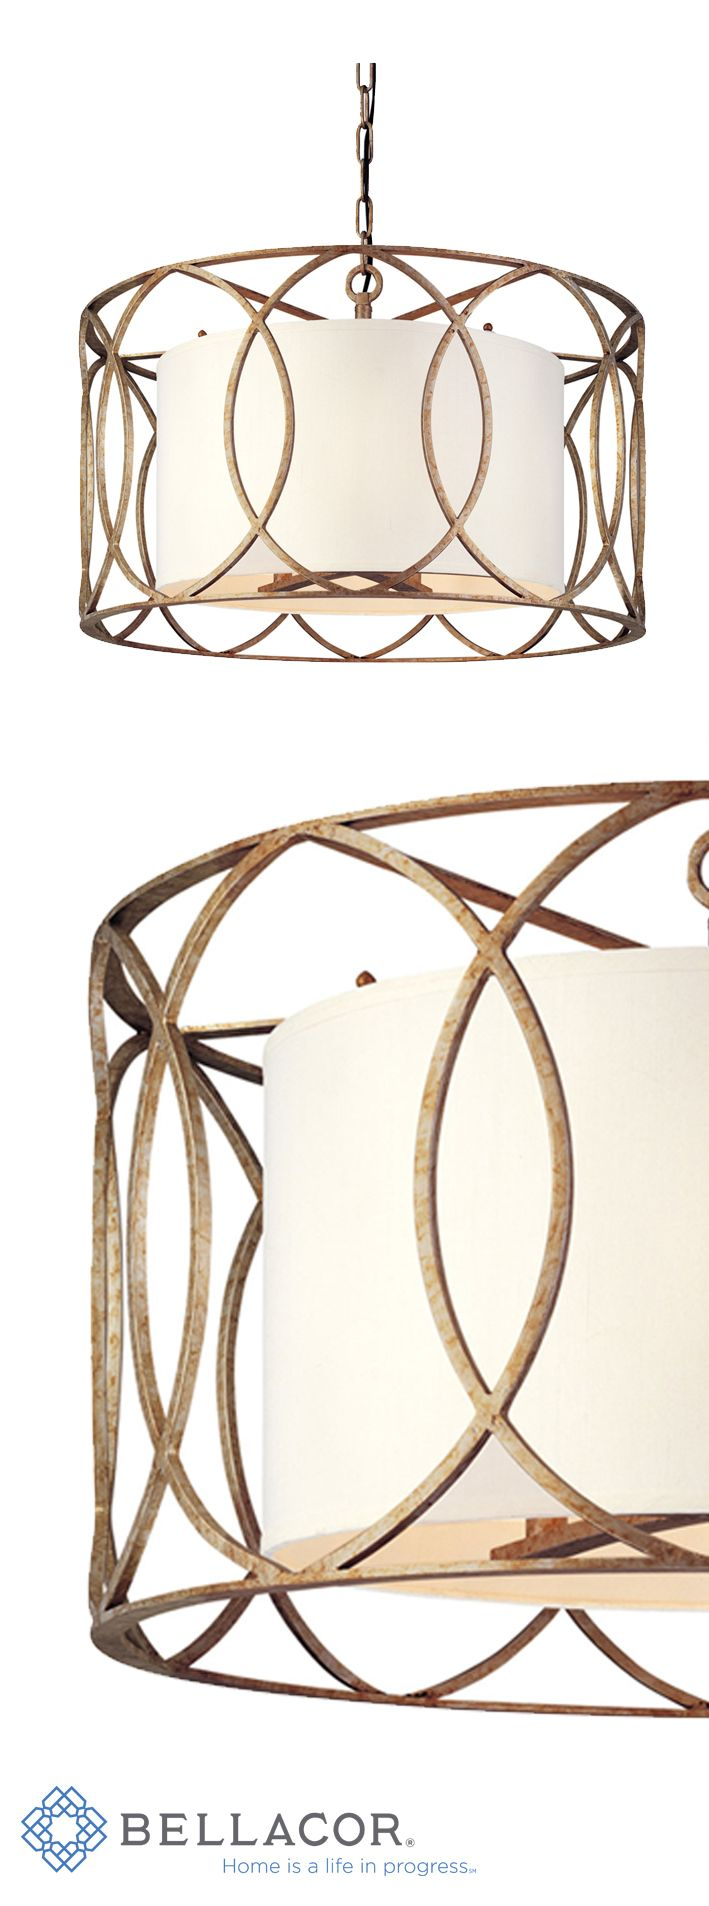 A lovely hand-worked wrought iron lamp. A linen shade with an elegant silver/gold finish. @www.bellacor.com/